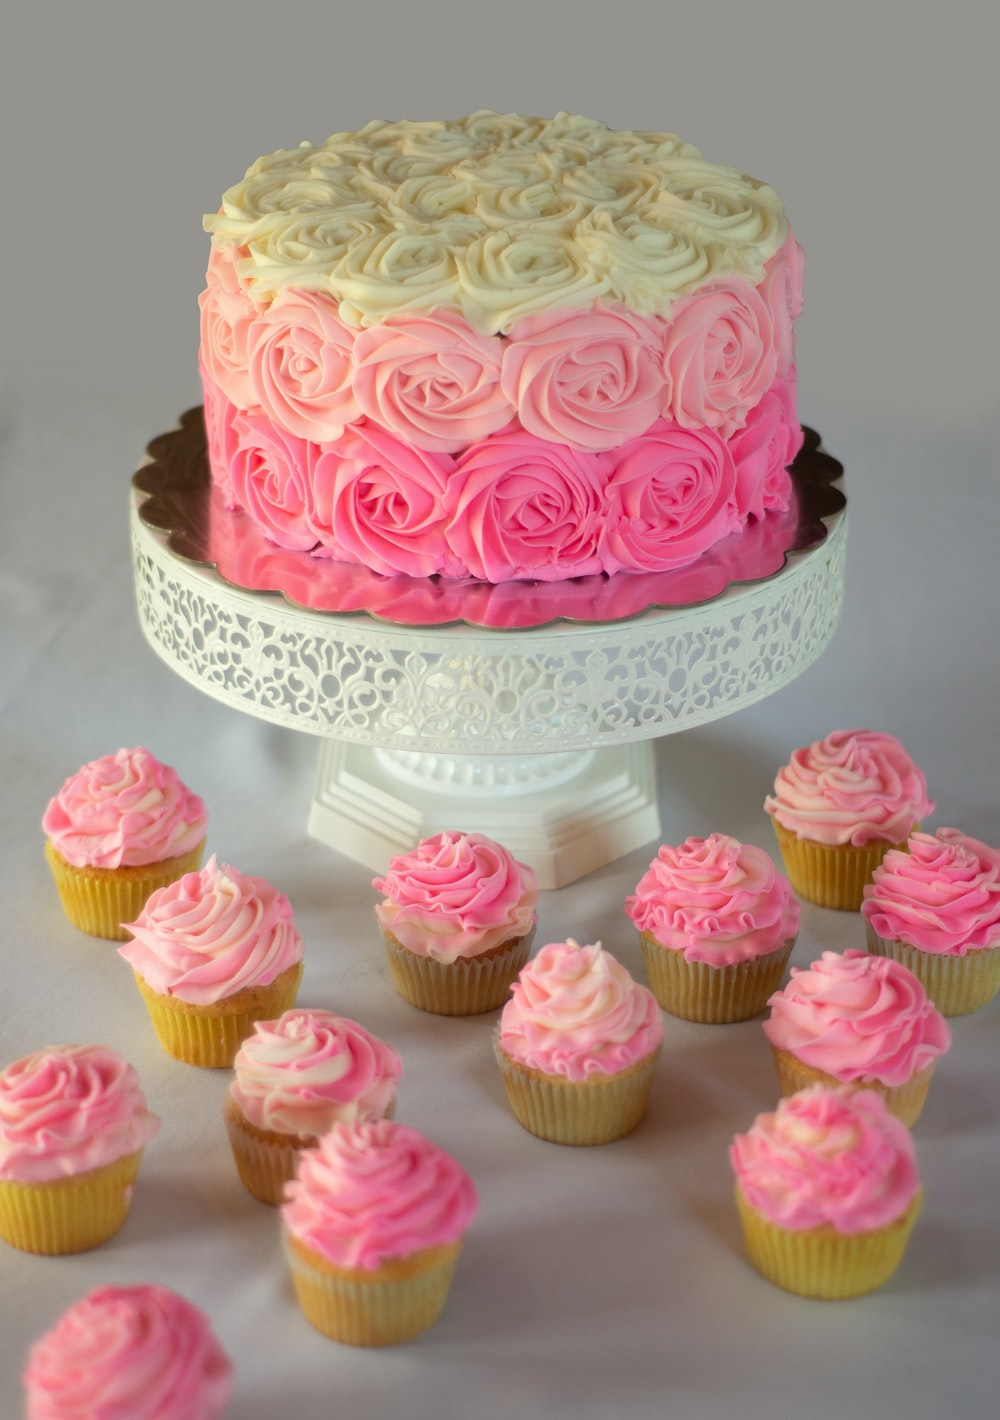 pink and white cake on white table